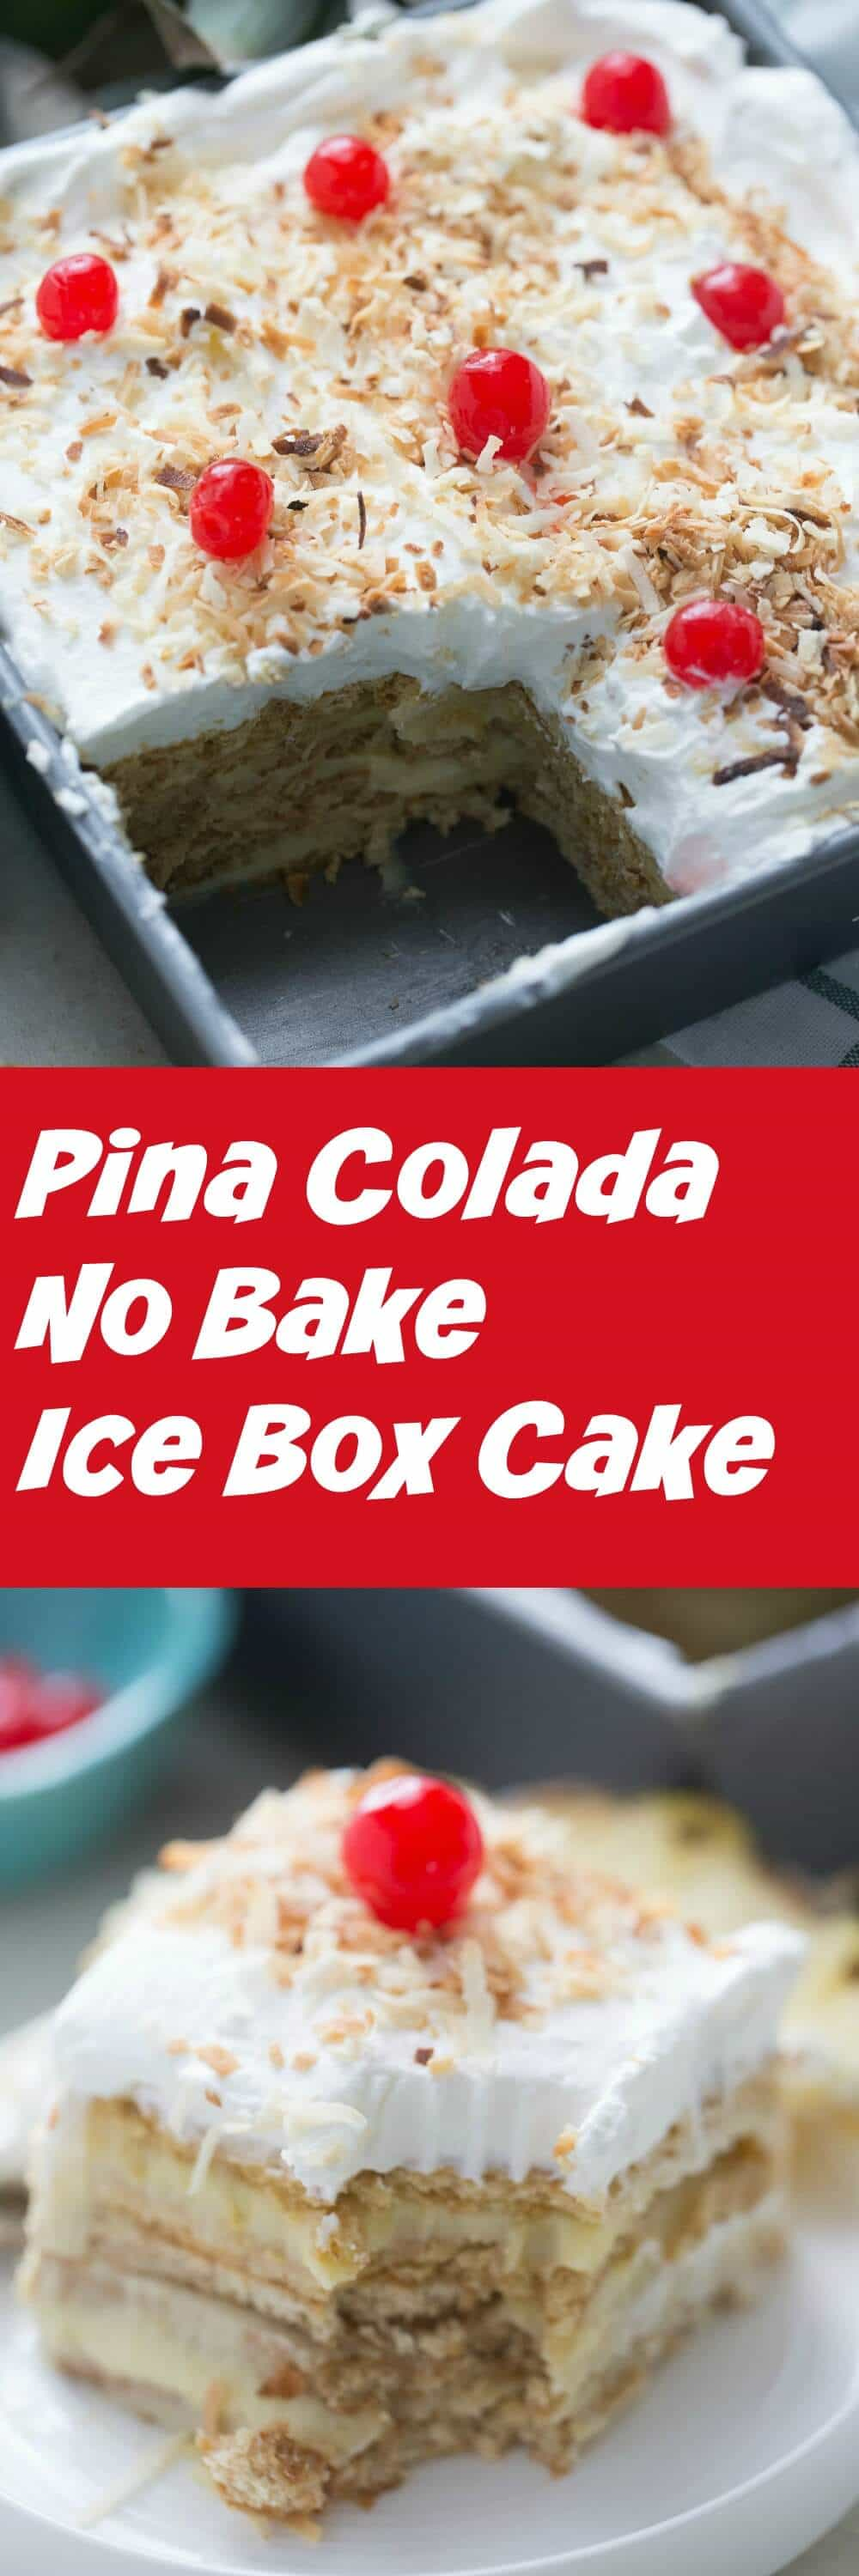 No bake cakes are perfect for those hot summer days. This pina colada ice box cake is a sweet and creamy no bake treat that everyone will love!